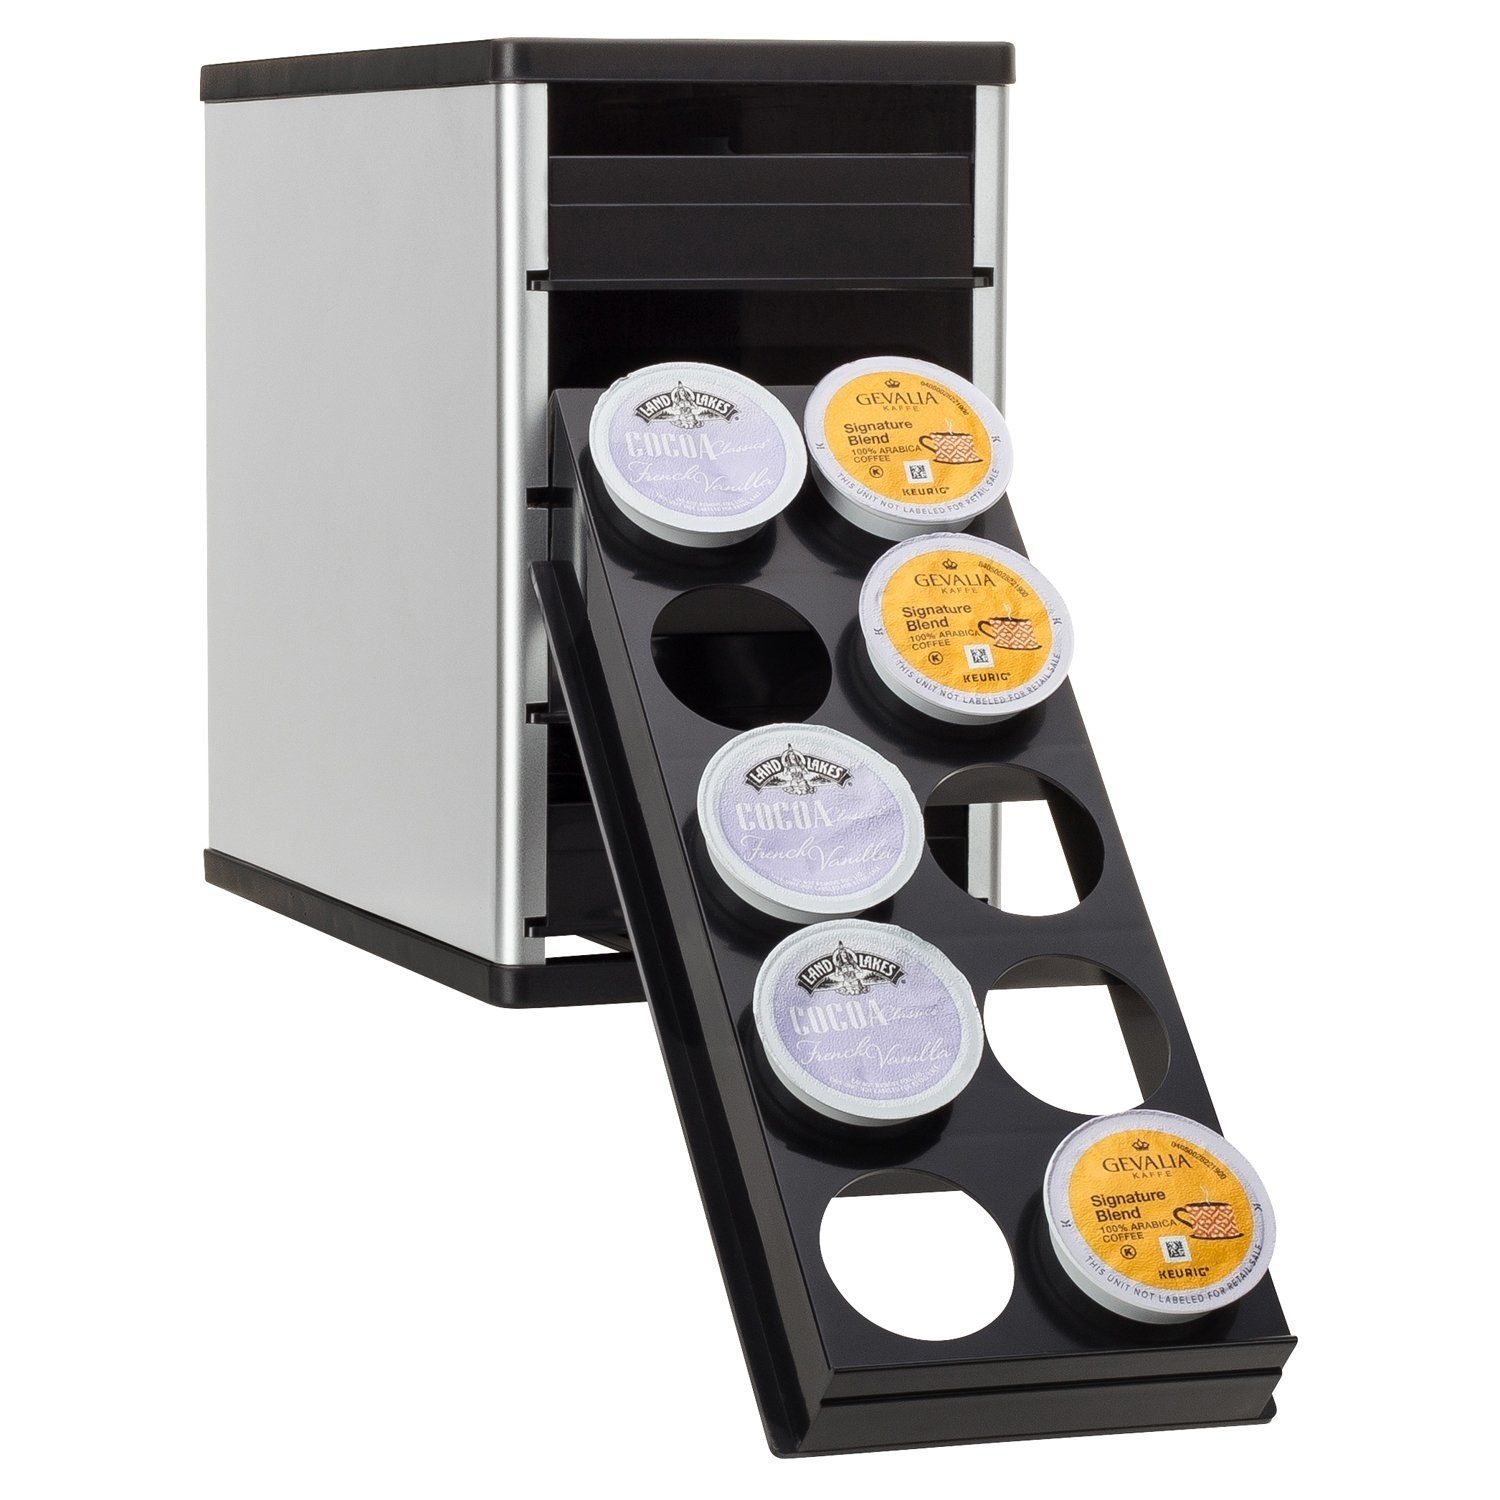 """Promising review: """"This K-cup organizes them wonderfully. The drawers slide out easily and flip down so it's easy to see the cups. I have it sitting in a cabinet that is above eye level, so it's nice to be able to lower each level so I can choose a variety of K-cups without having to get a stepladder! I read about previous buyers having problems with the drawers sticking, but this issue must have been resolved because I have a variety of K-cups from multiple companies and have absolutely no problems with the drawers. It works perfectly and is a great way to organize! I use different drawers for different items (coffee, tea, hot chocolate), so it's easy to pull out the right drawer for the item I'm looking for!"""" —Kindle CustomerGet it from Amazon for $24.99."""